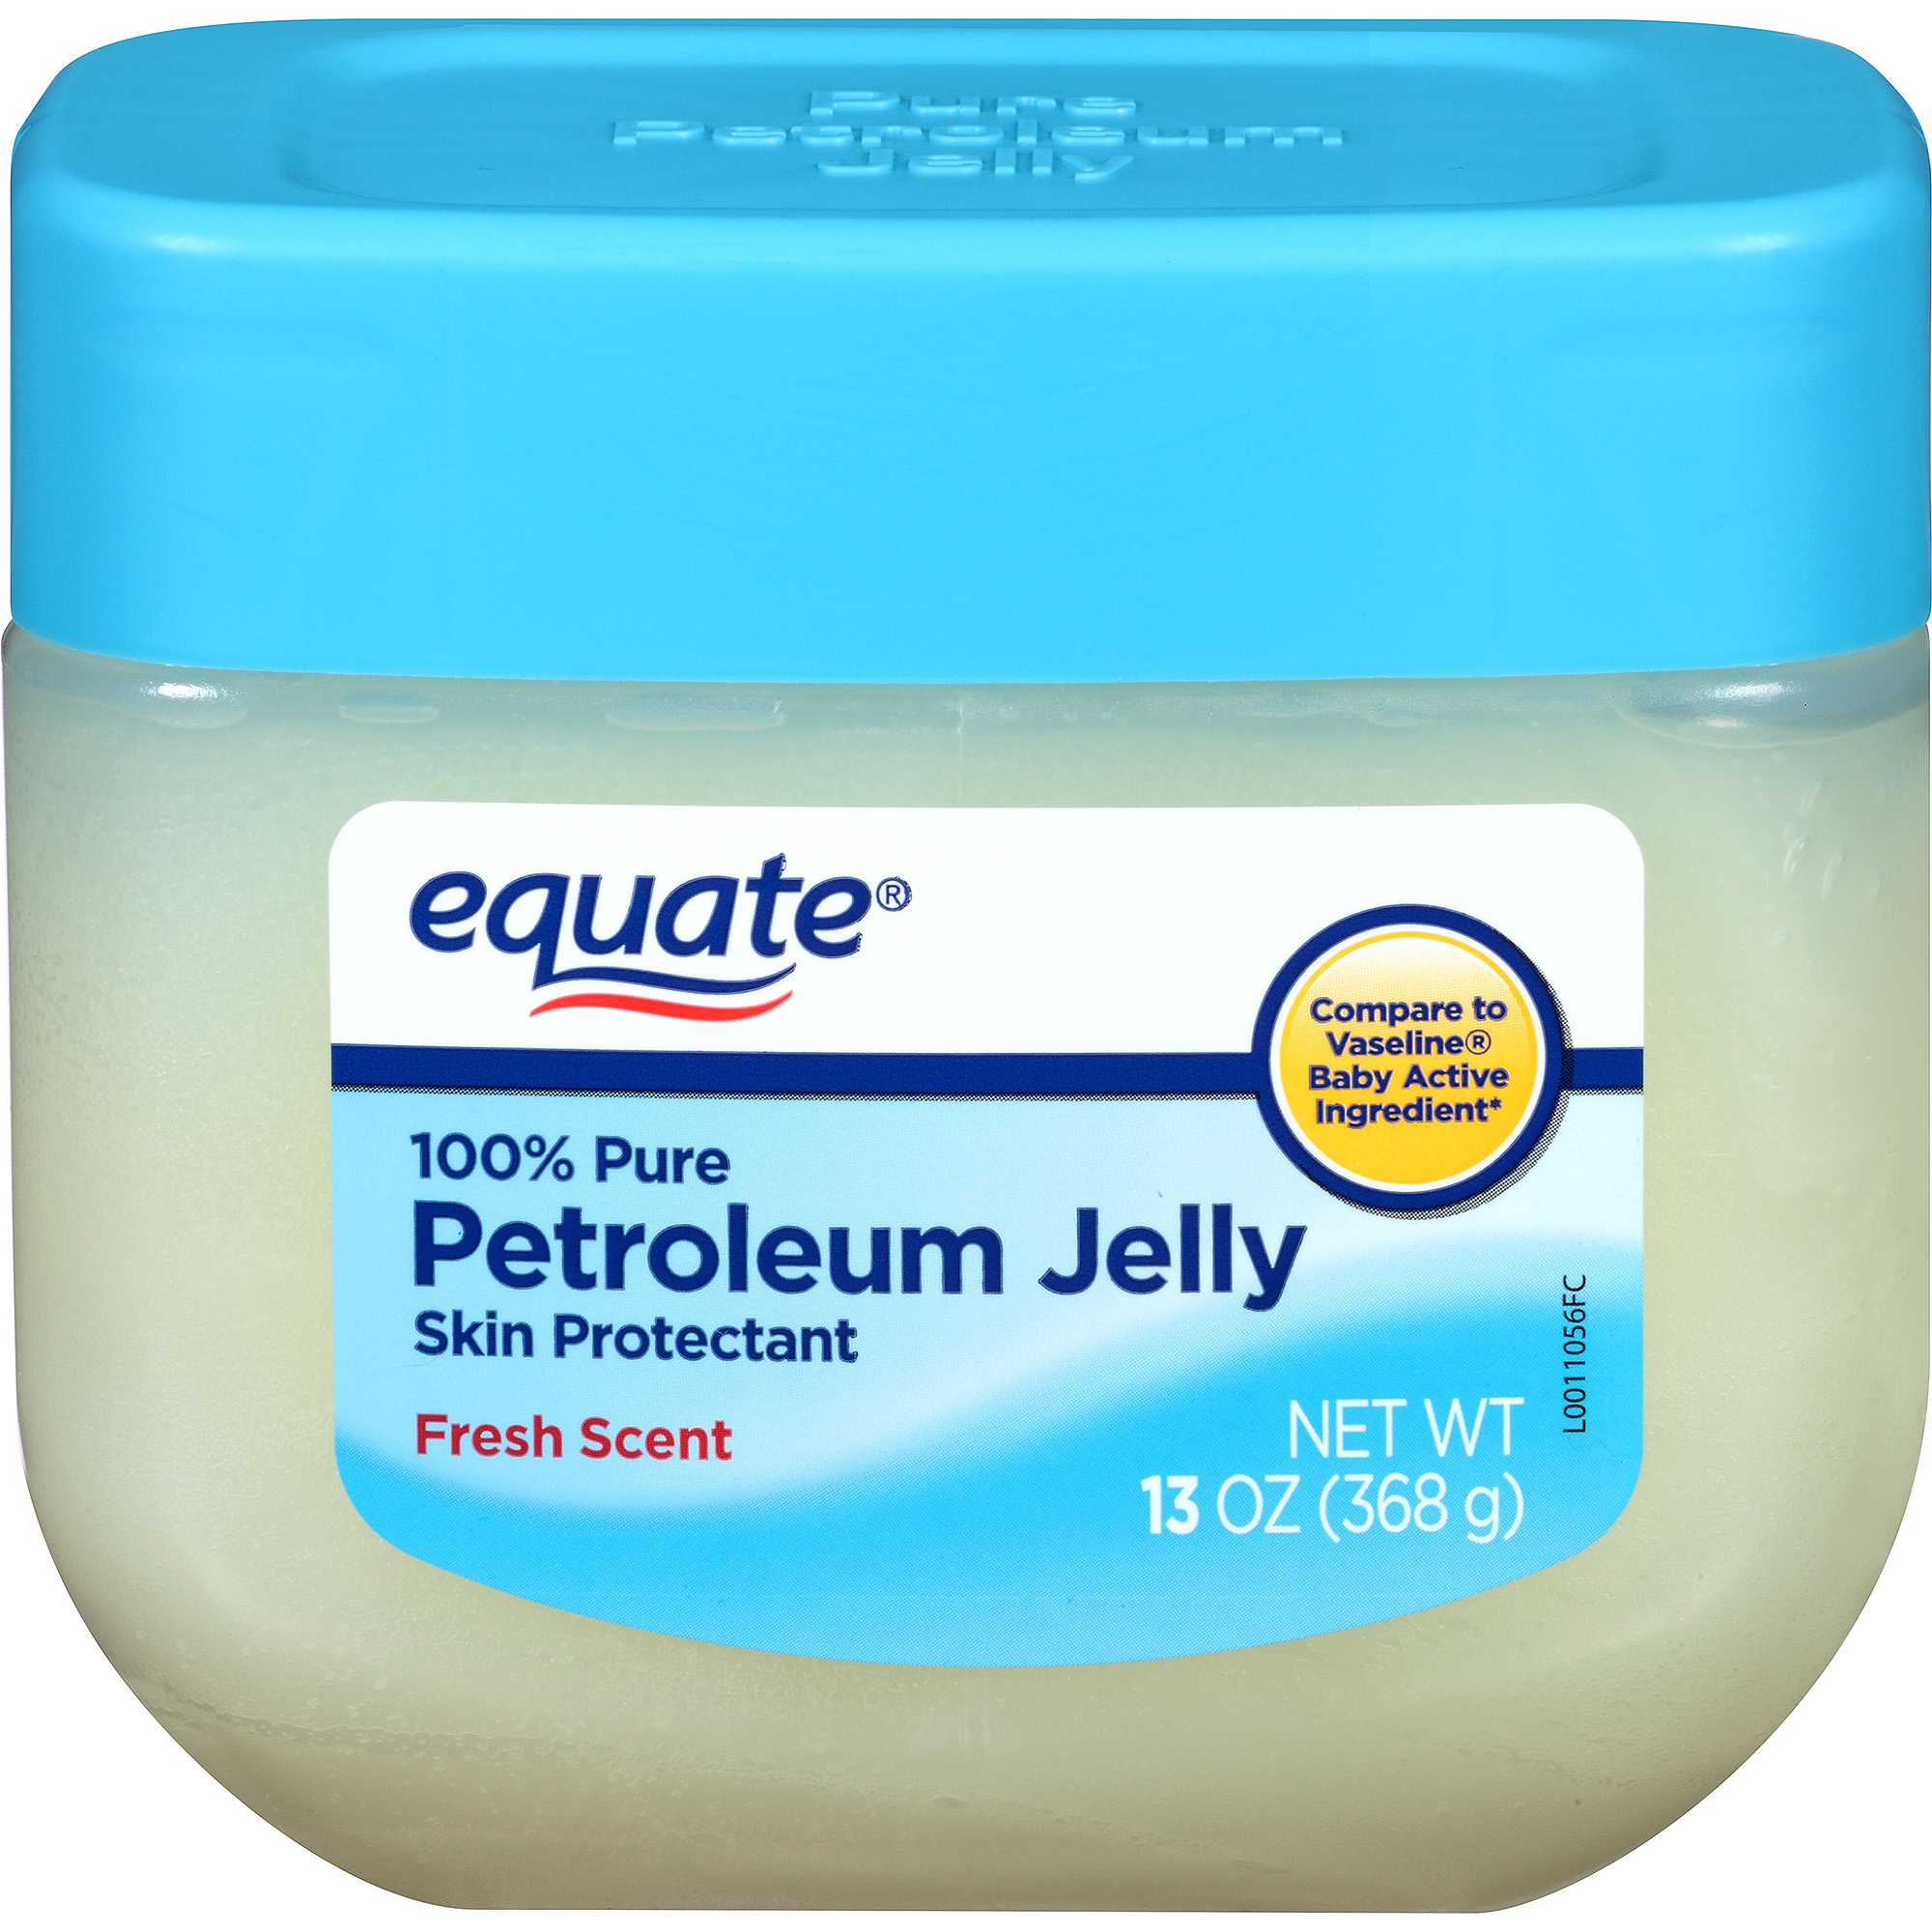 Equate Skin Protectant Nursery Jelly, 13 oz